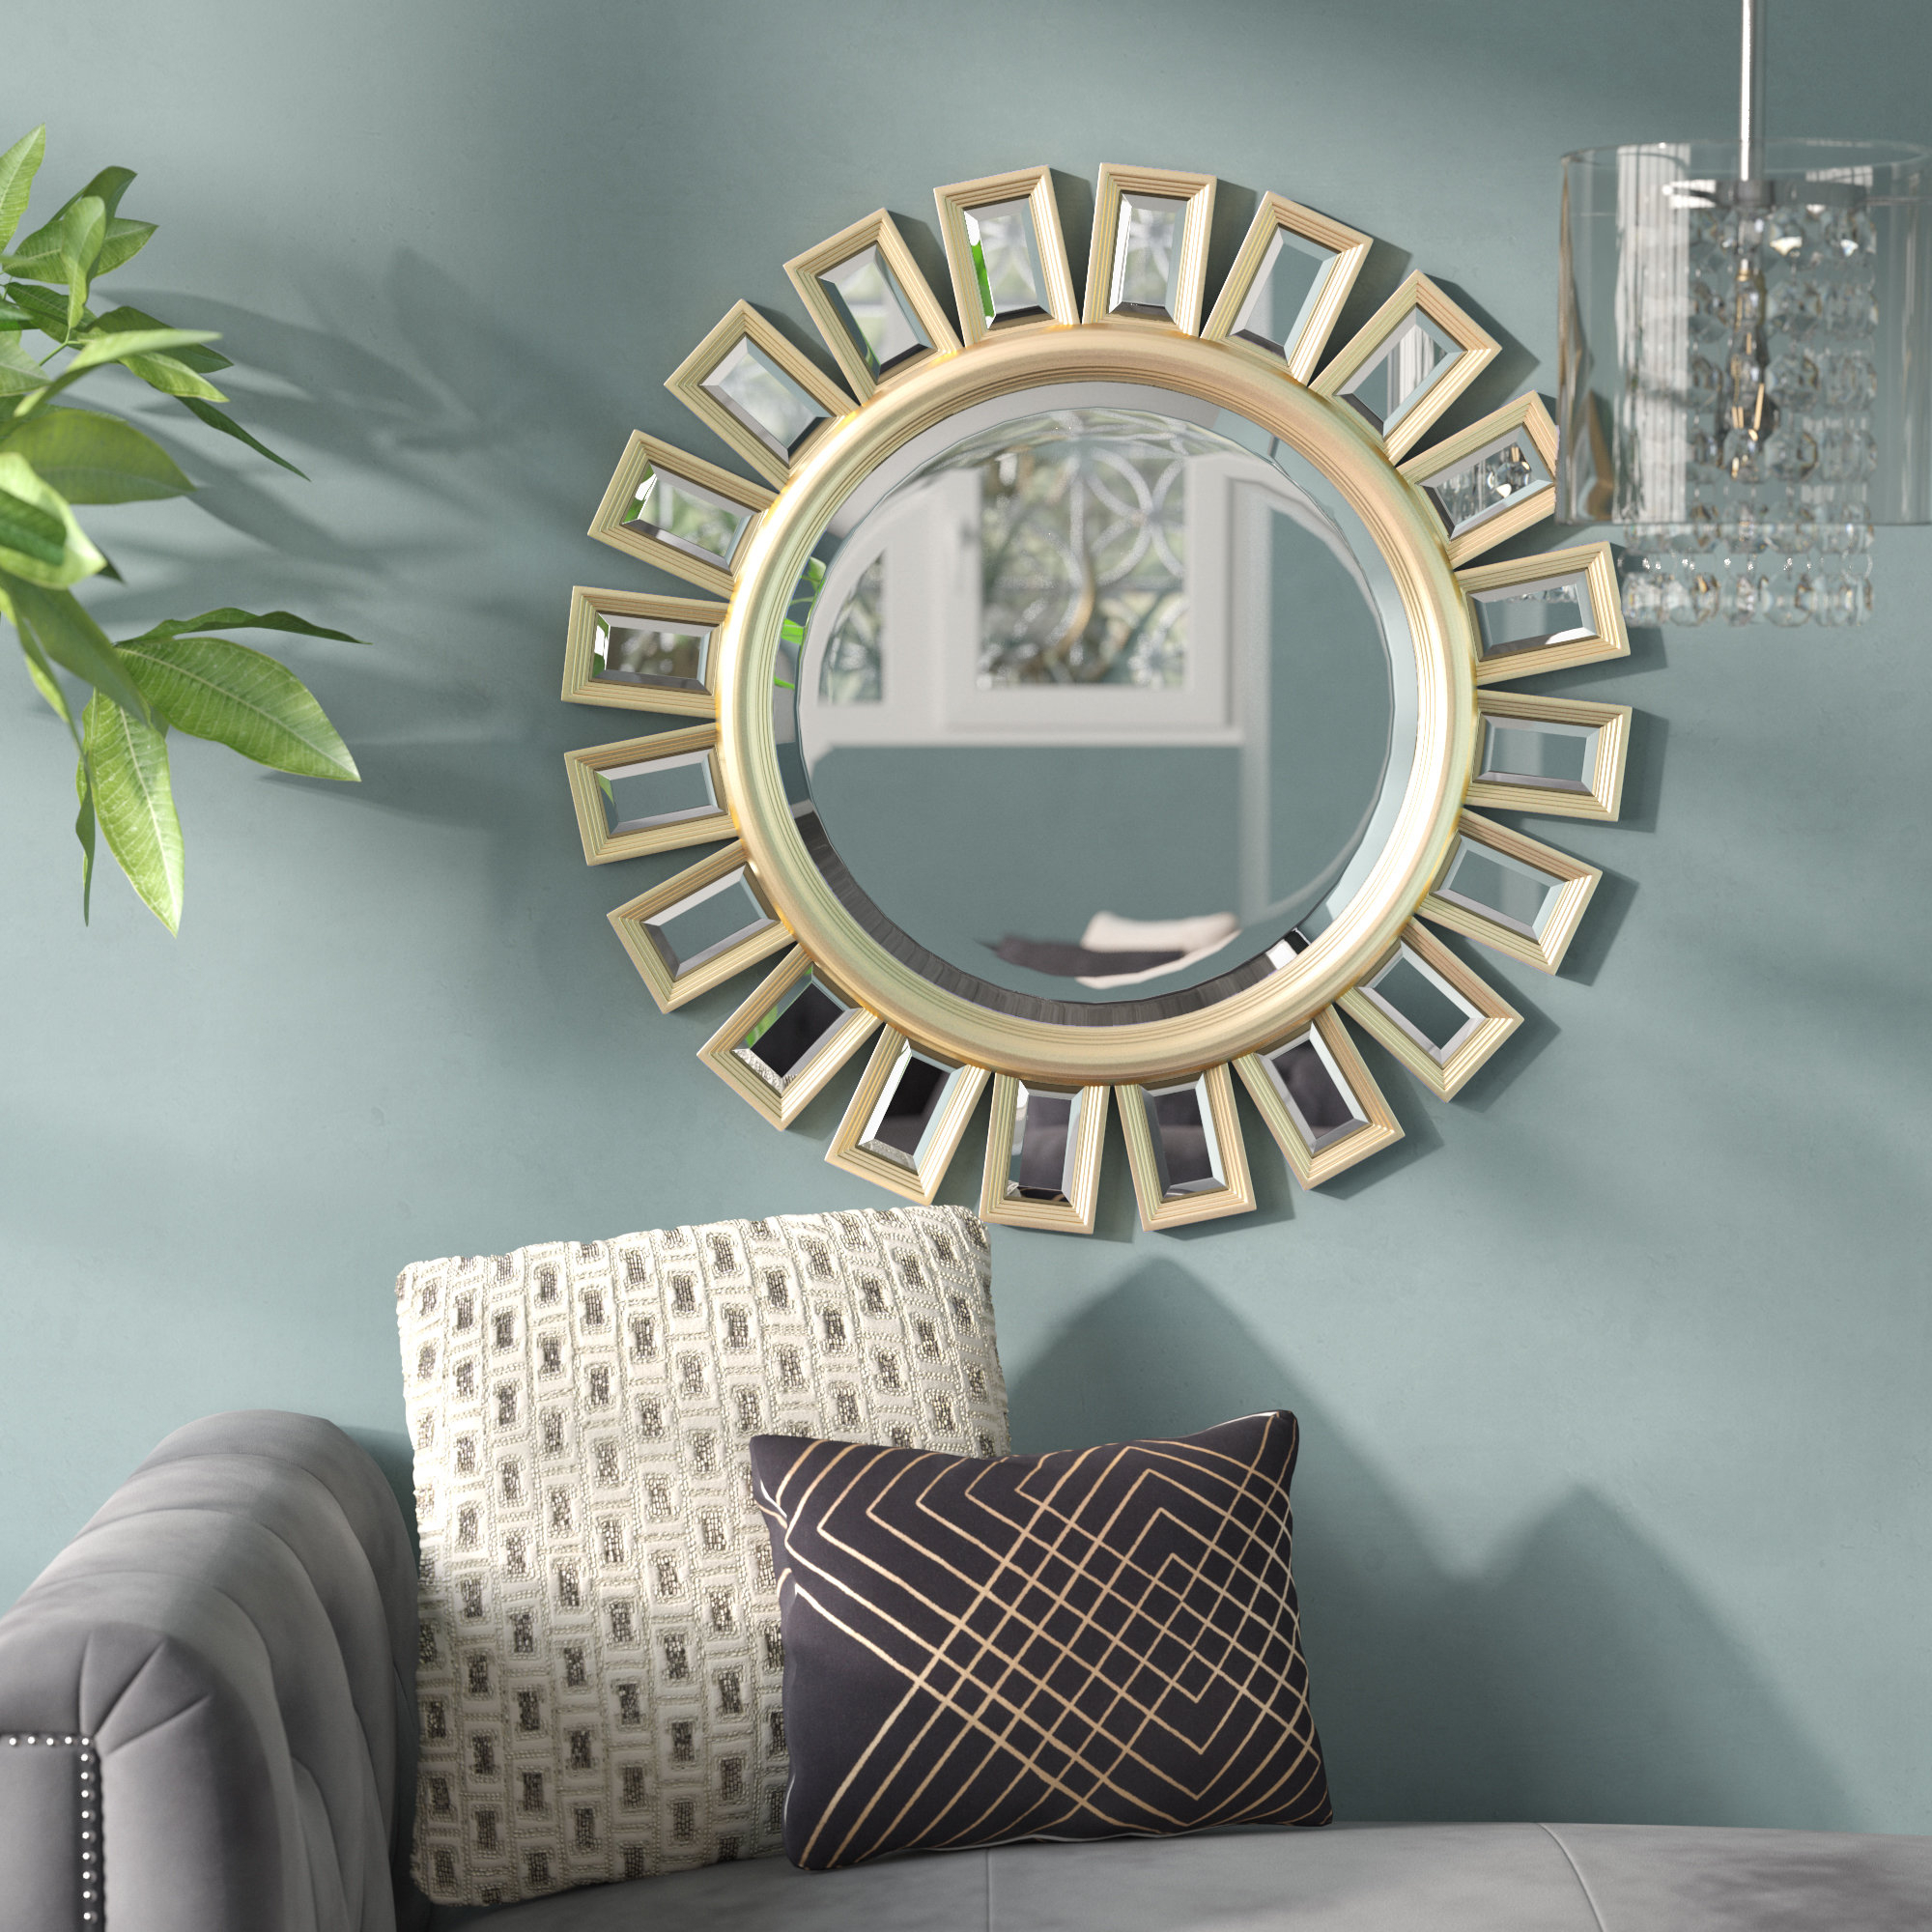 "Large & Oversized (Over 32"" High) Sunburst Mirrors You'll inside Josephson Starburst Glam Beveled Accent Wall Mirrors (Image 14 of 22)"